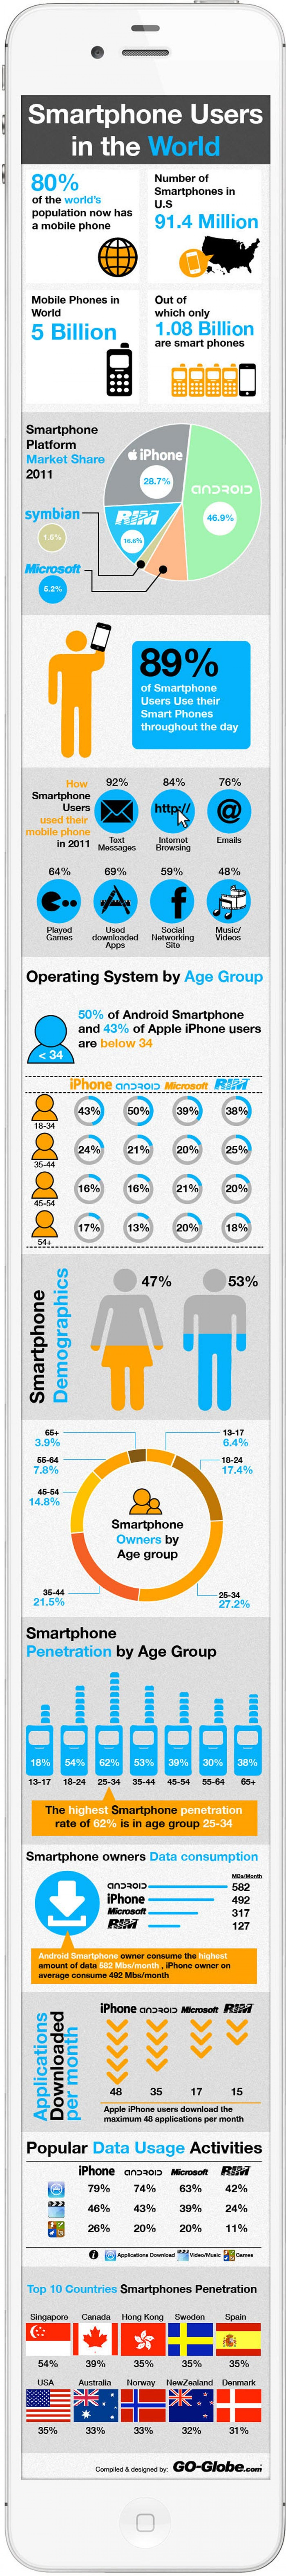 Smartphone Users in the World Infographic